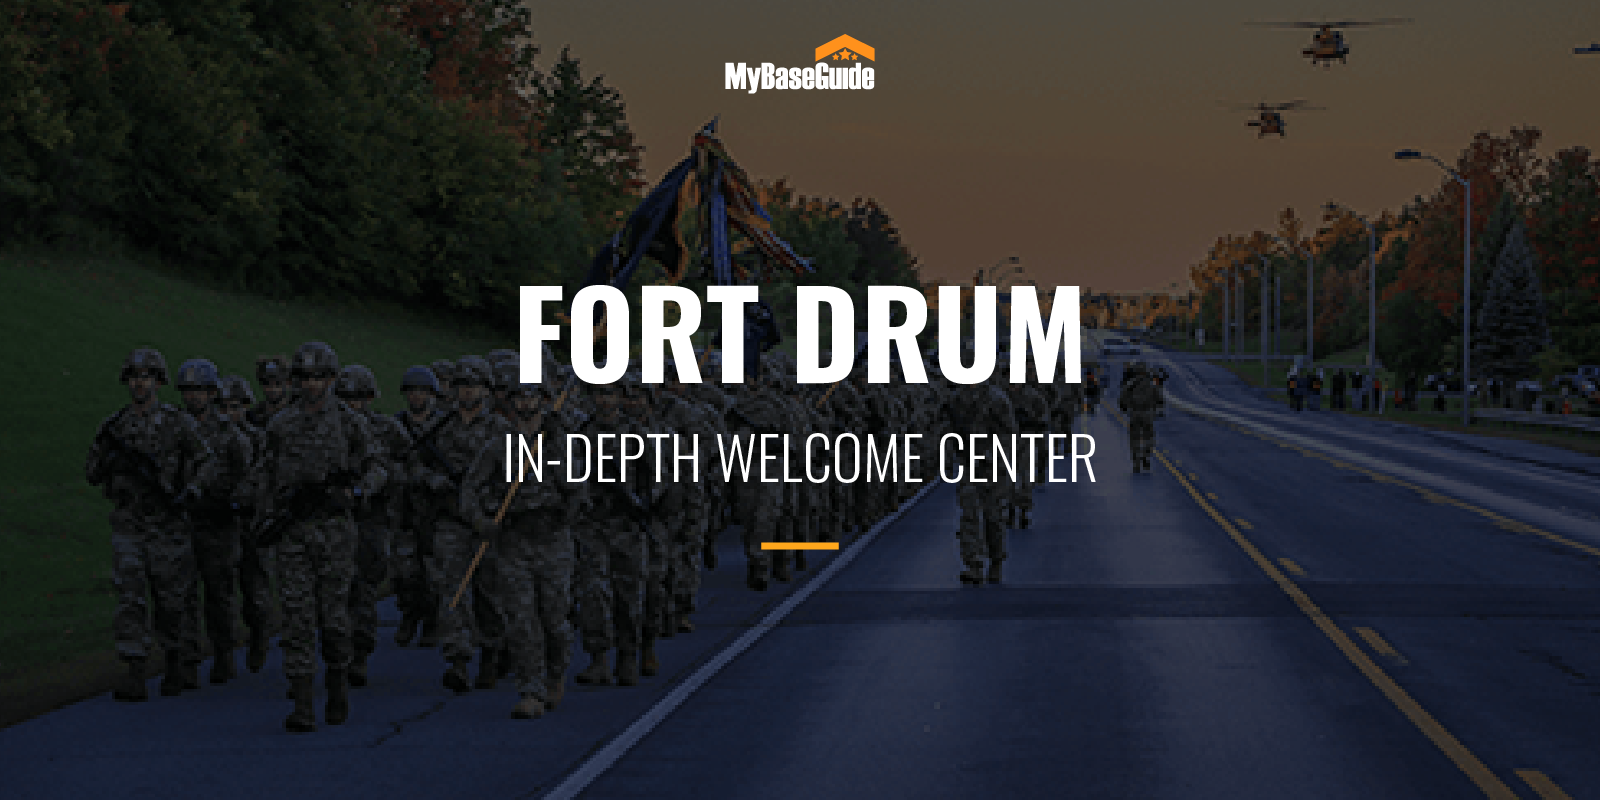 Fort Drum In-Depth Welcome Center